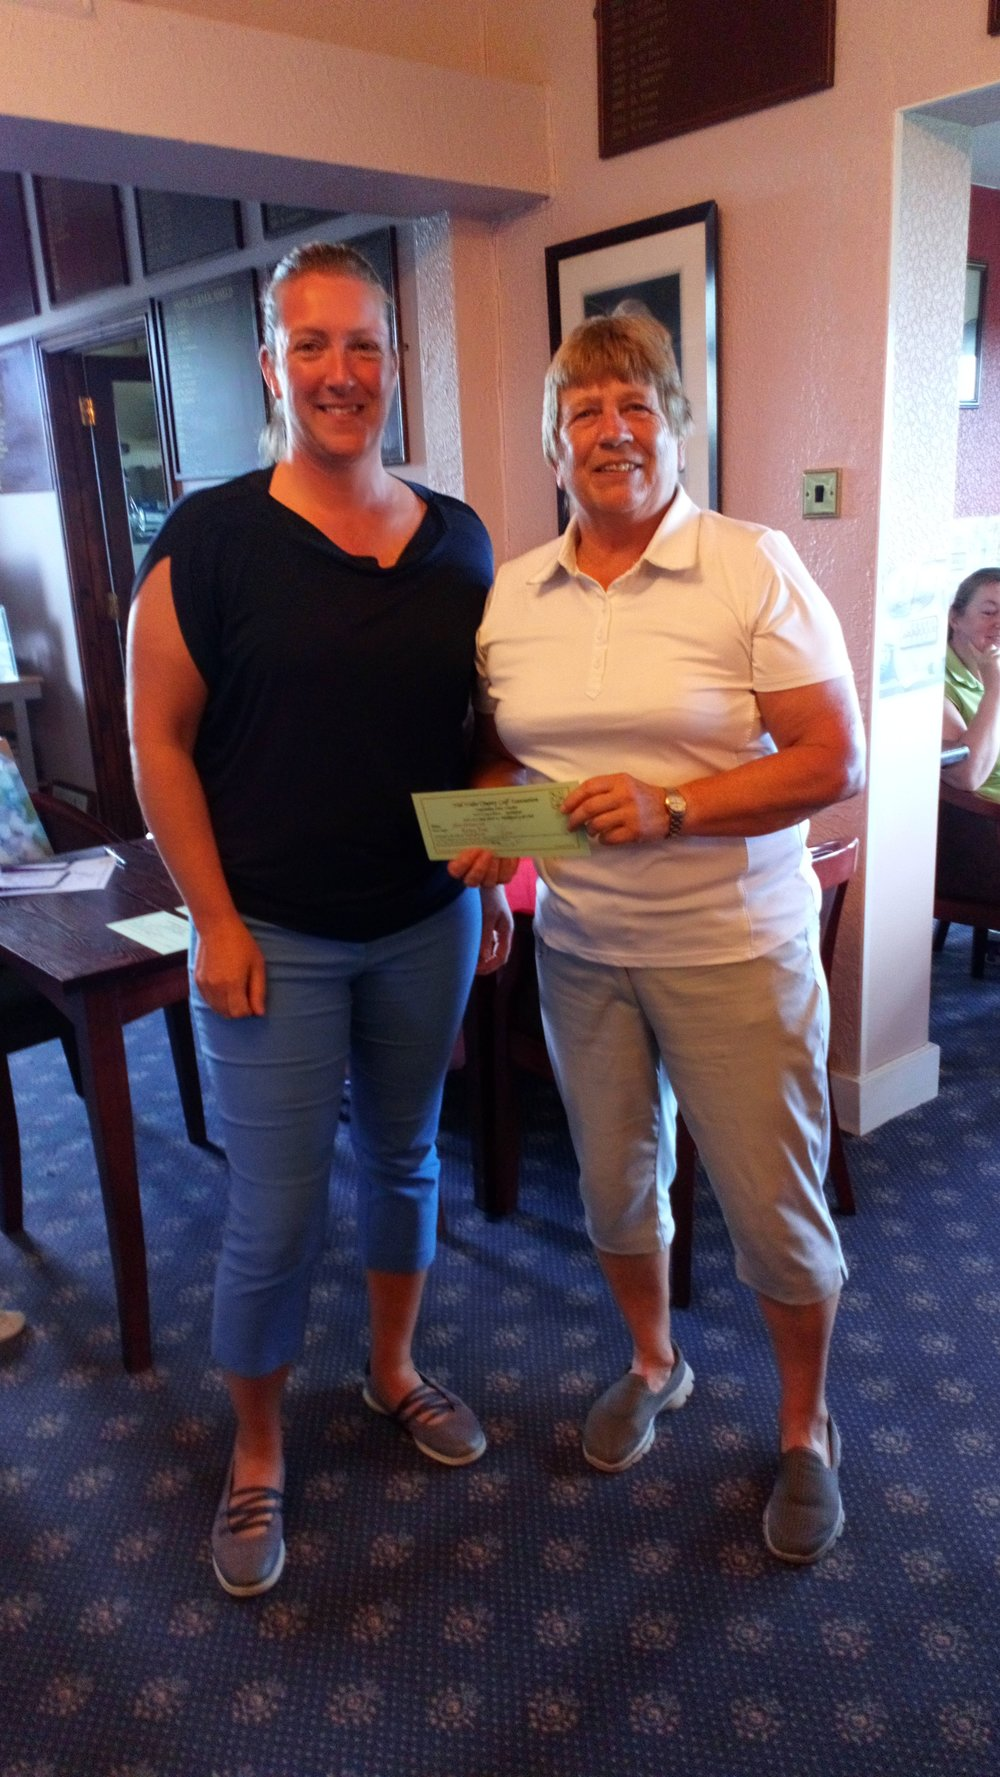 Kathy Price of Borth and Ynyslas (R), fourth in the Silver Division, with Ellen Jones of Welshpool.